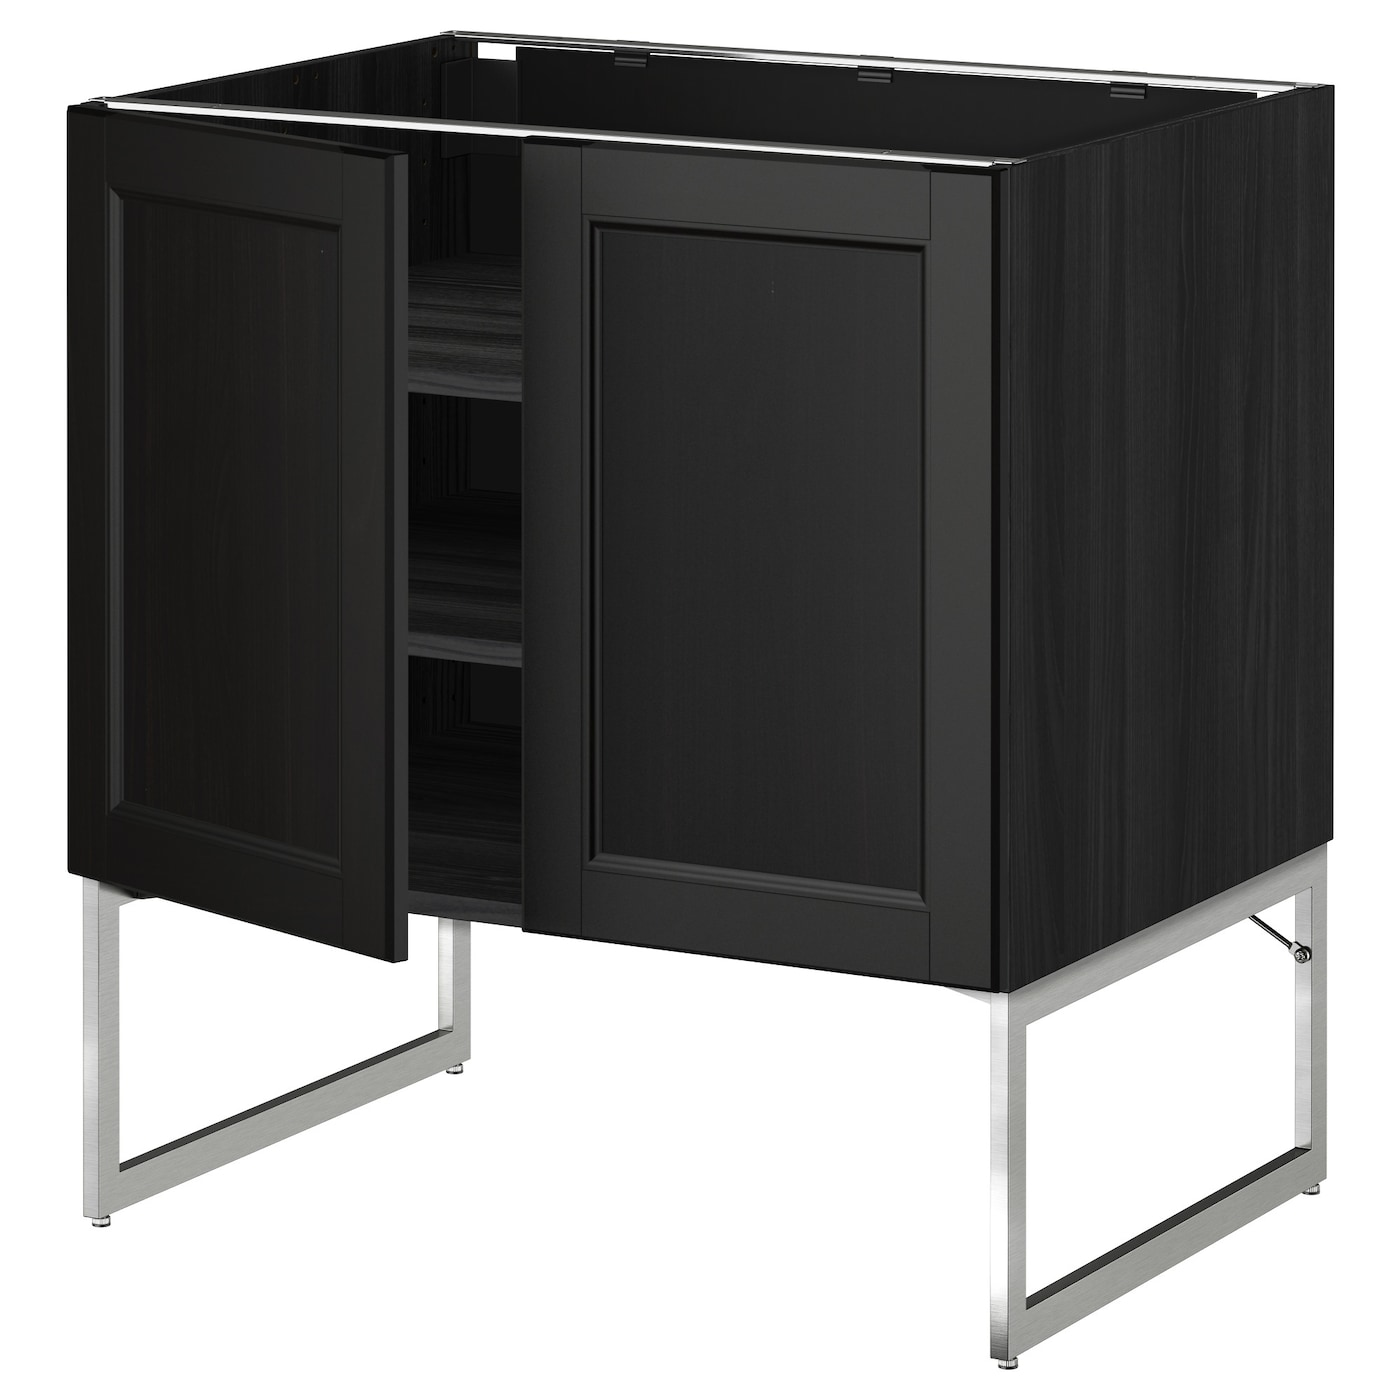 METOD Base Cabinet With Shelves/2 Doors Black/laxarby Black-brown 80x60x60 Cm